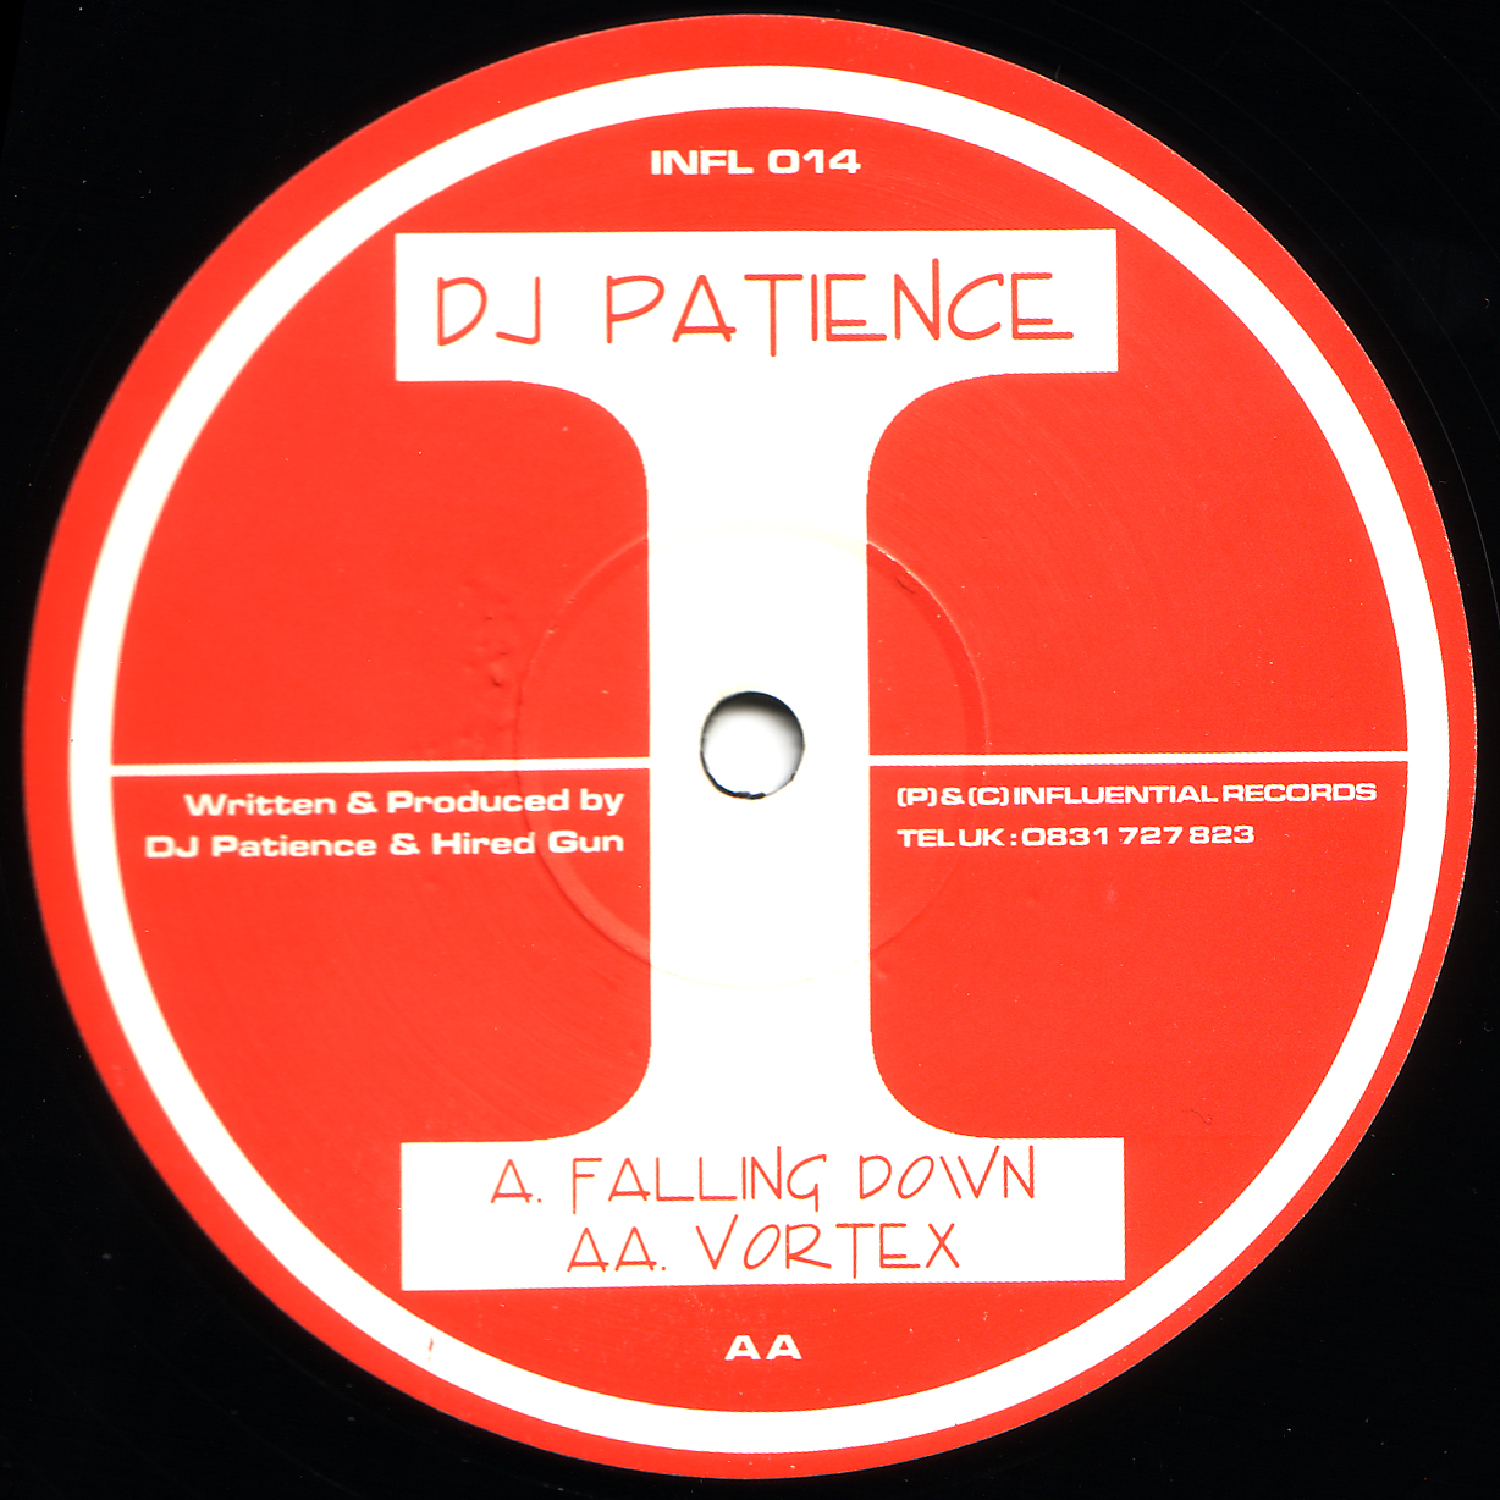 [INFL014] Dj Patience - Falling Down EP (Digital Only)